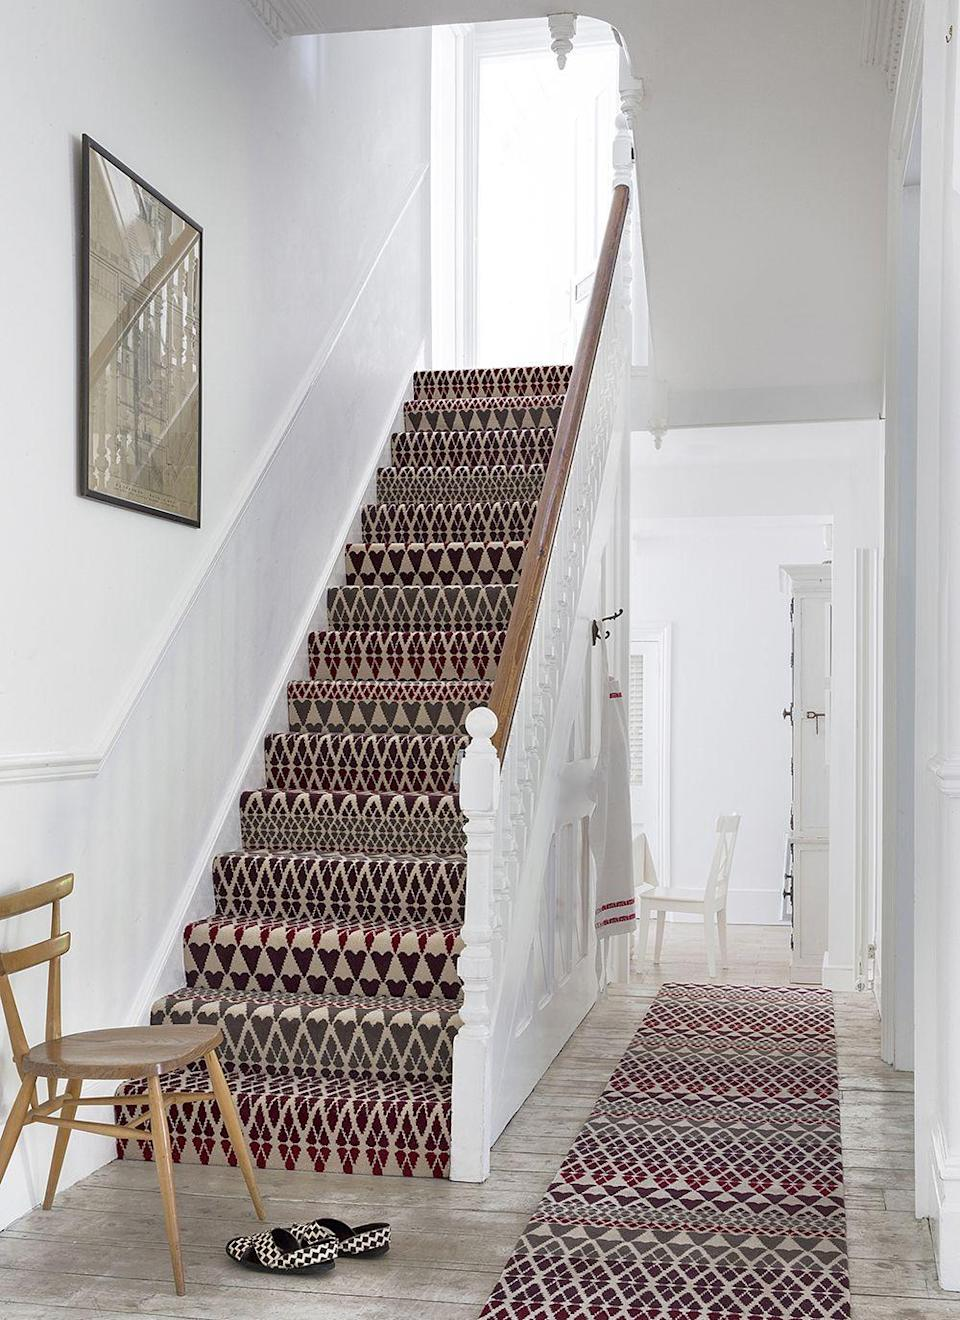 """<p>Pristine white walls and light wooden floors are the perfect base for brave design choices. Here, Margo Selby's signature geometric pattern in a colourful mixture of burgundy, cream and green becomes a real feature - doubly so by matching a stair carpet with a runner. </p><p>Pictured: <a href=""""https://www.alternativeflooring.com/collection/quirky_b/quirky_b__margo_selby_collection/quirky_b_fair_isle/annie.html"""" rel=""""nofollow noopener"""" target=""""_blank"""" data-ylk=""""slk:Margo Selby Fair Isle Annie Carpet at Alternative Flooring"""" class=""""link rapid-noclick-resp"""">Margo Selby Fair Isle Annie Carpet at Alternative Flooring</a></p>"""